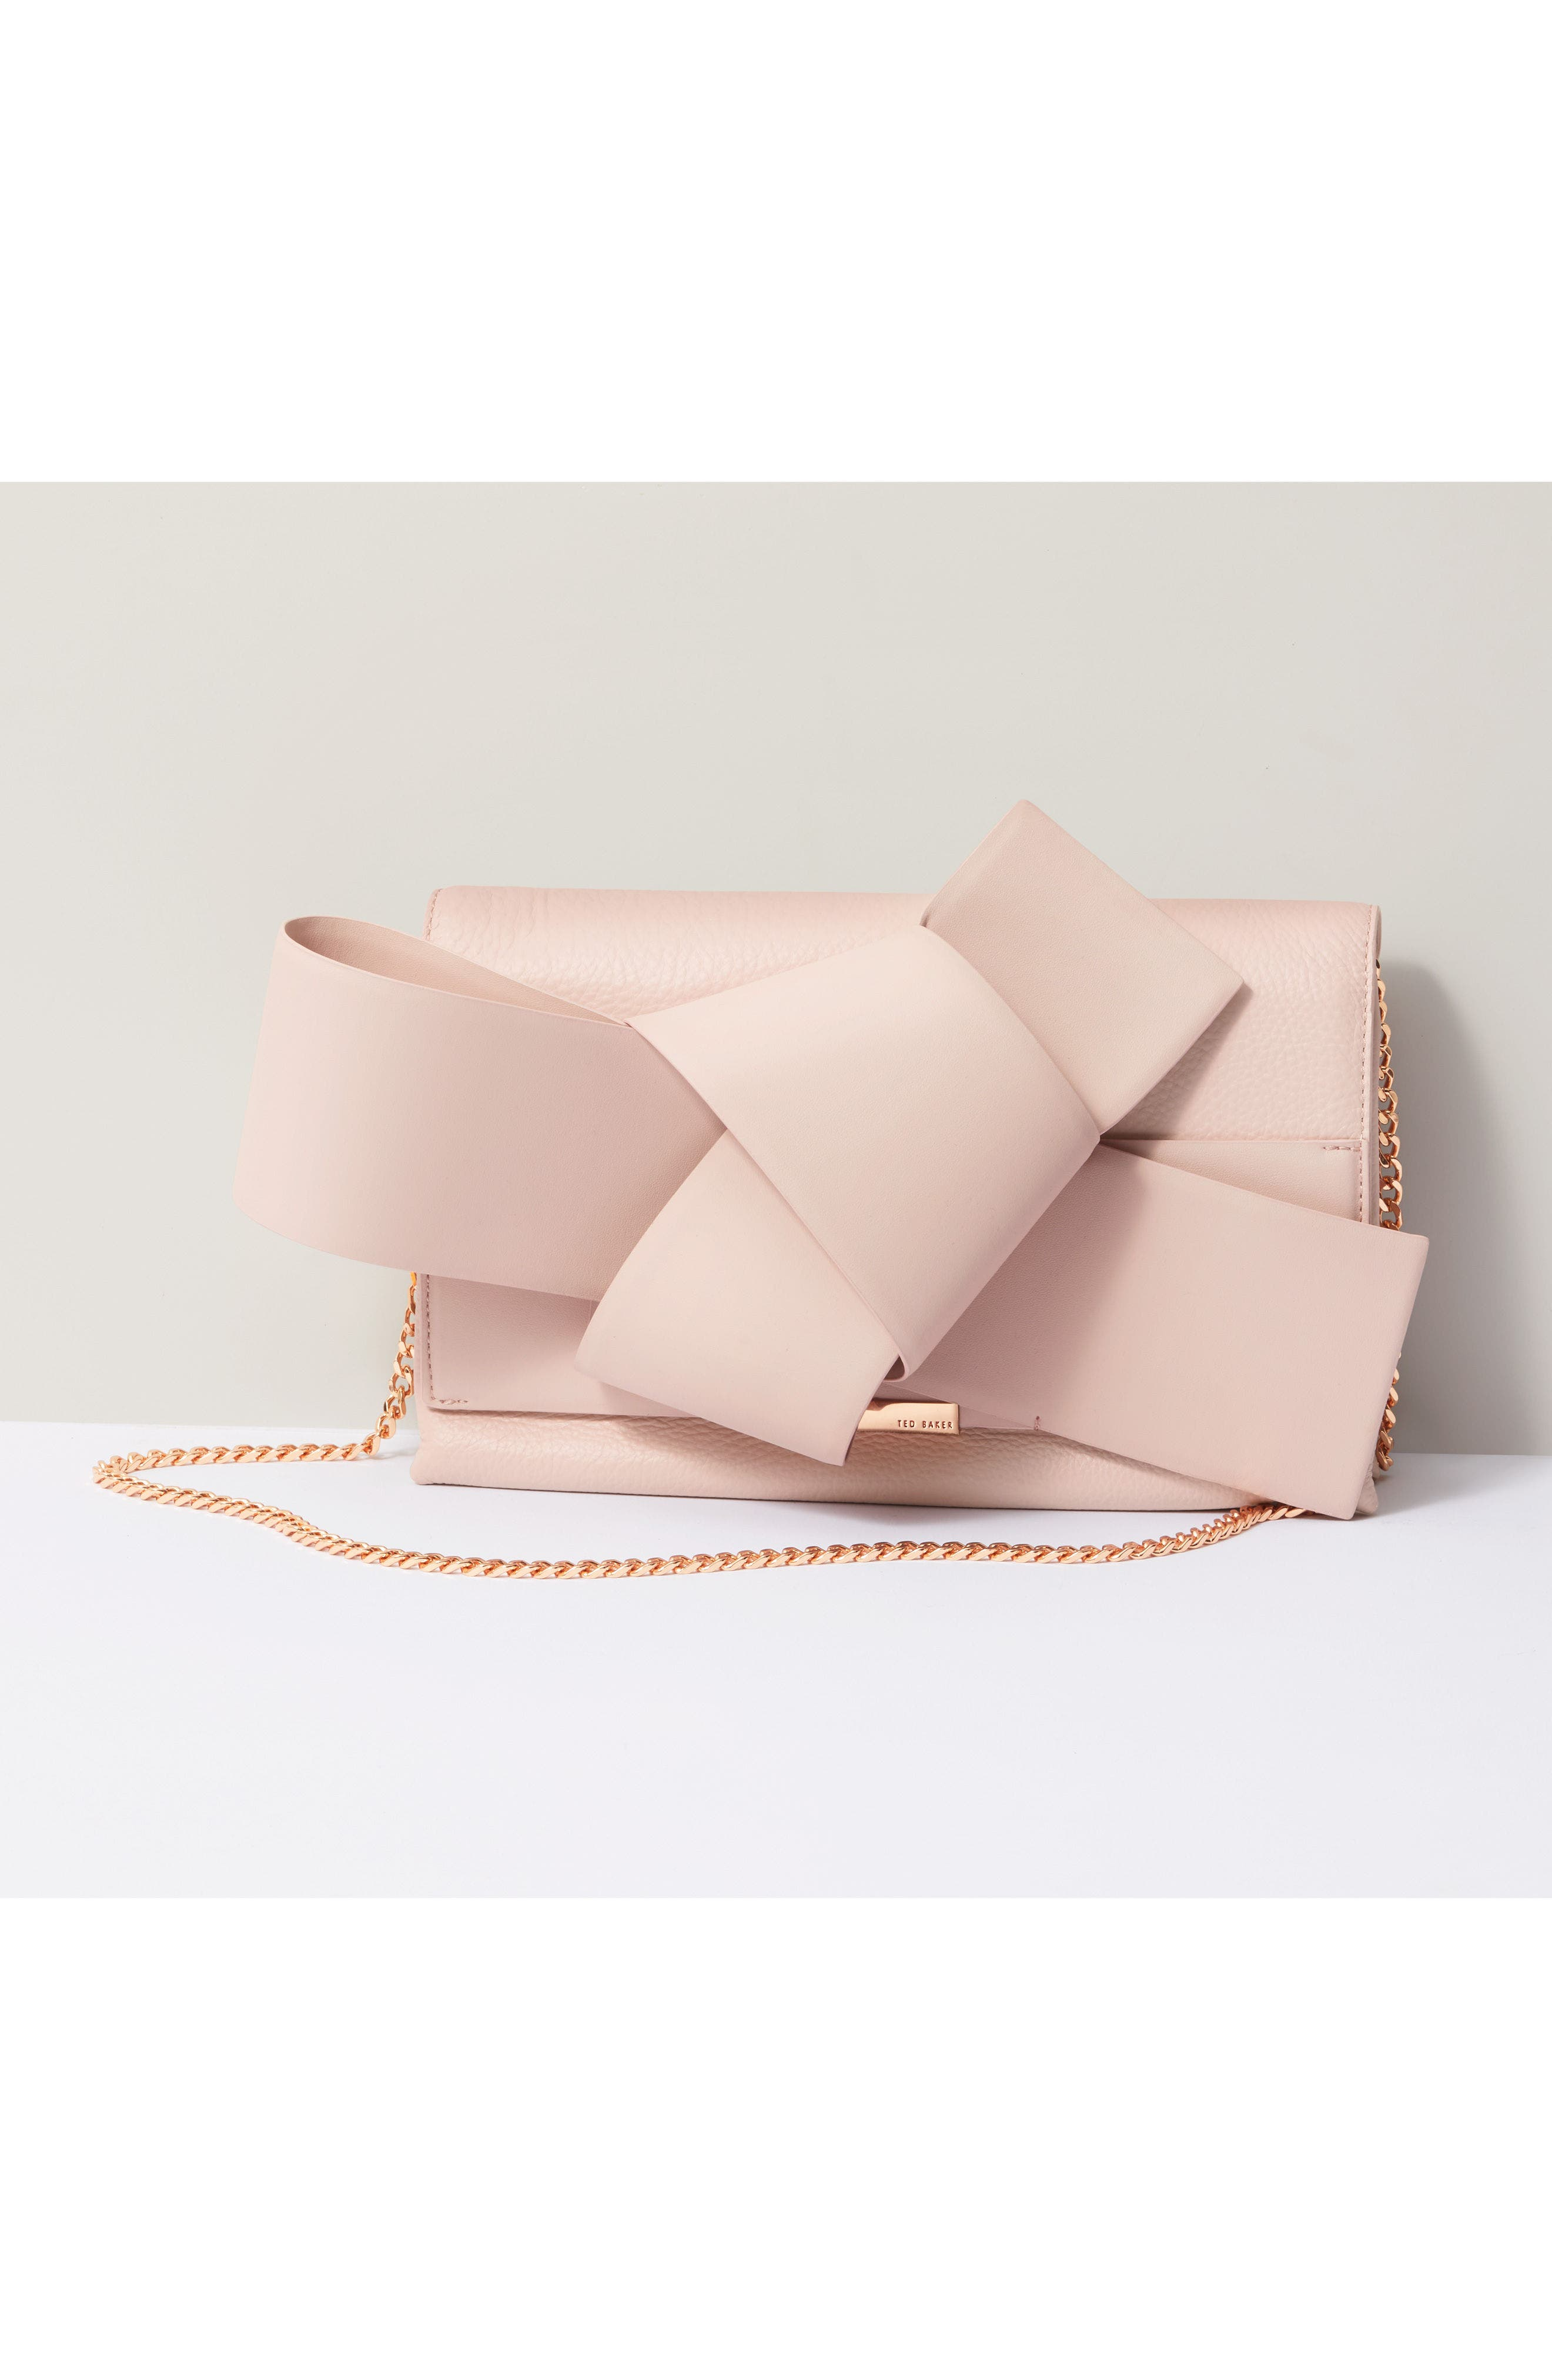 Knotted Bow Leather Clutch,                             Alternate thumbnail 7, color,                             Light Pink